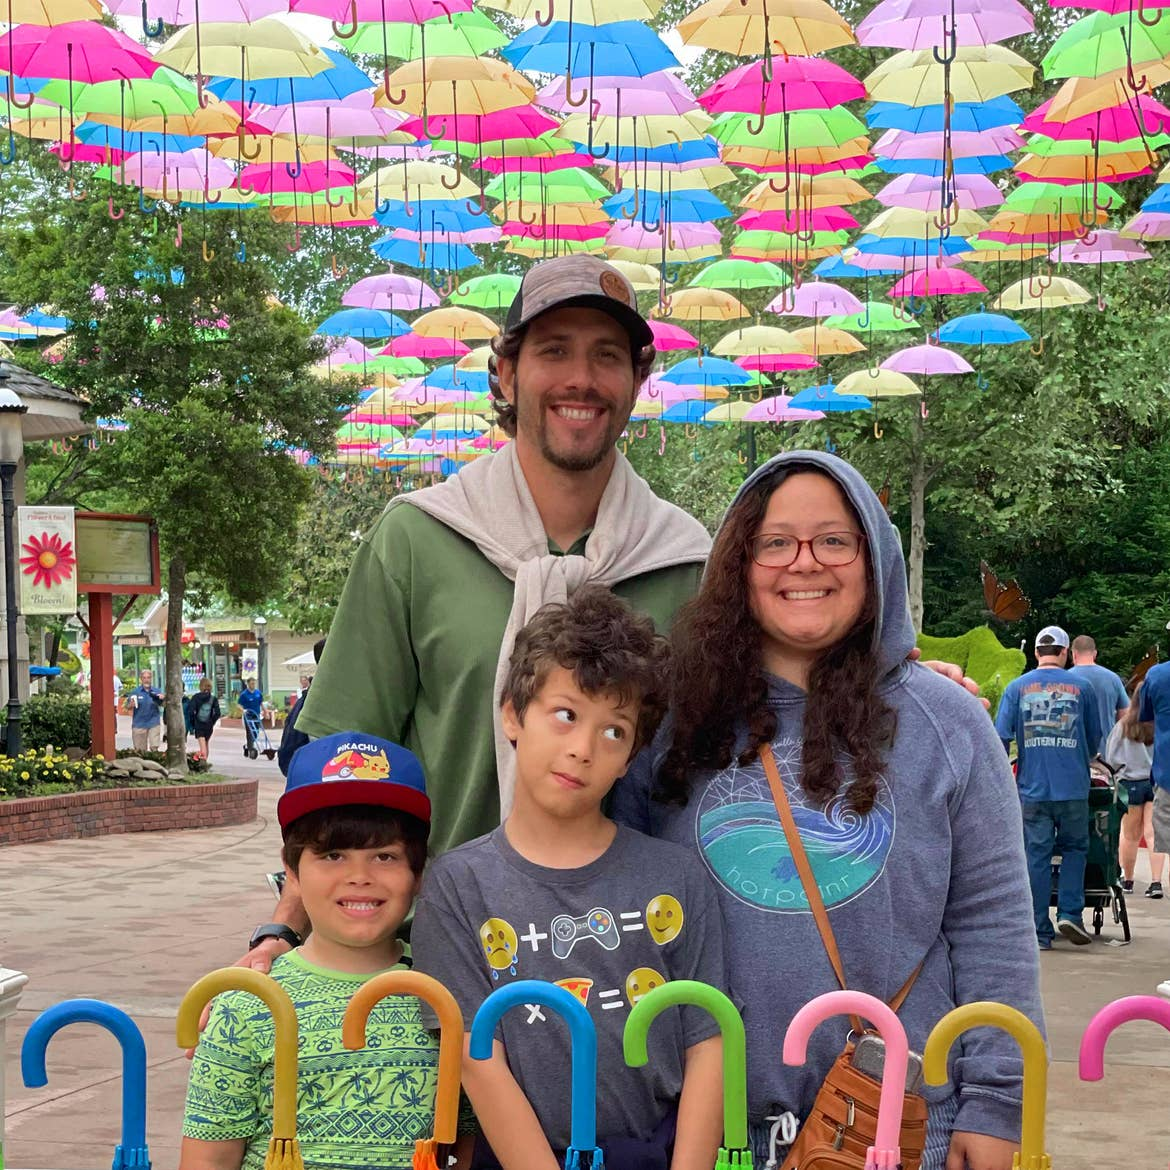 A family of four stand under a colorful umbrella display outdoors.